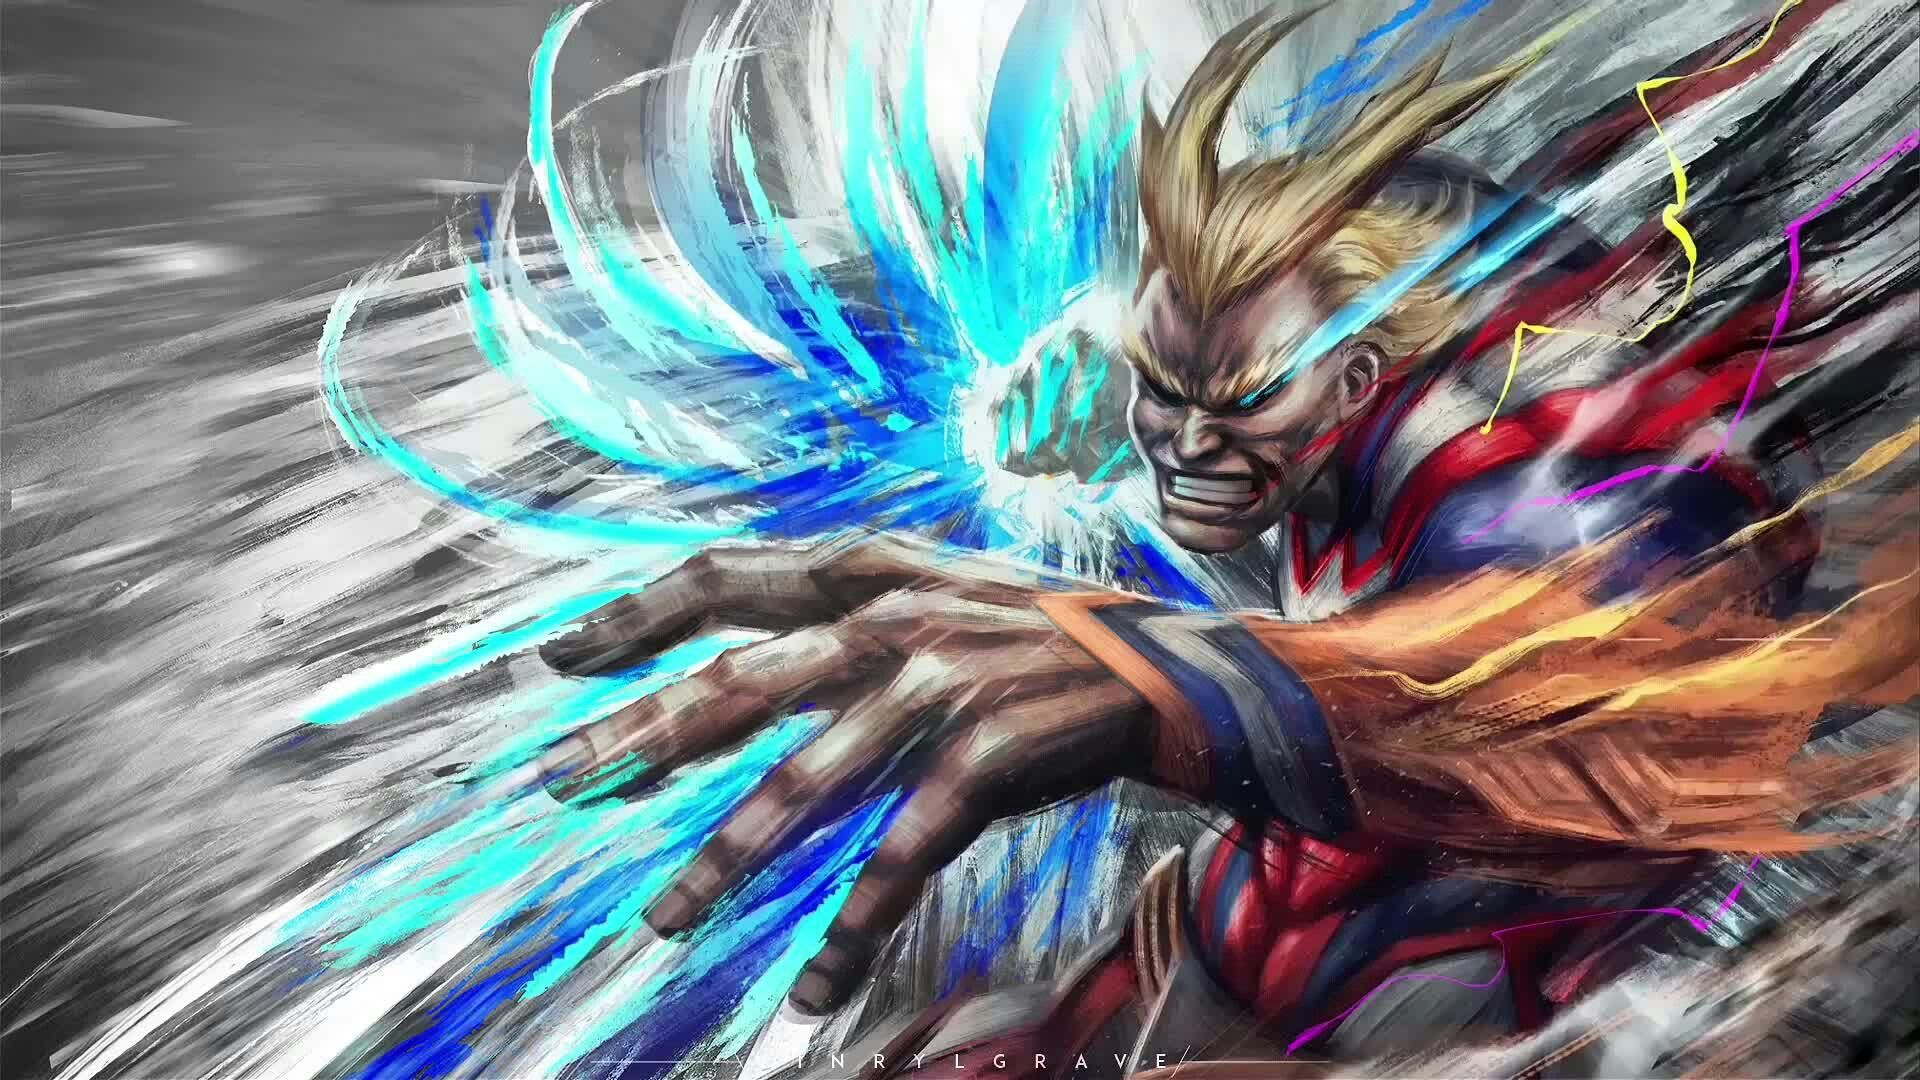 All Might My Hero Academia Wallpapers Top Free All Might My Hero Academia Backgrounds Wallpaperaccess By downloading this app you'll get a huge collection of anime wallpapers to use them in your mobiles or tablets ❤ anime wallpaper ❤ contains wallpapers and. all might my hero academia wallpapers